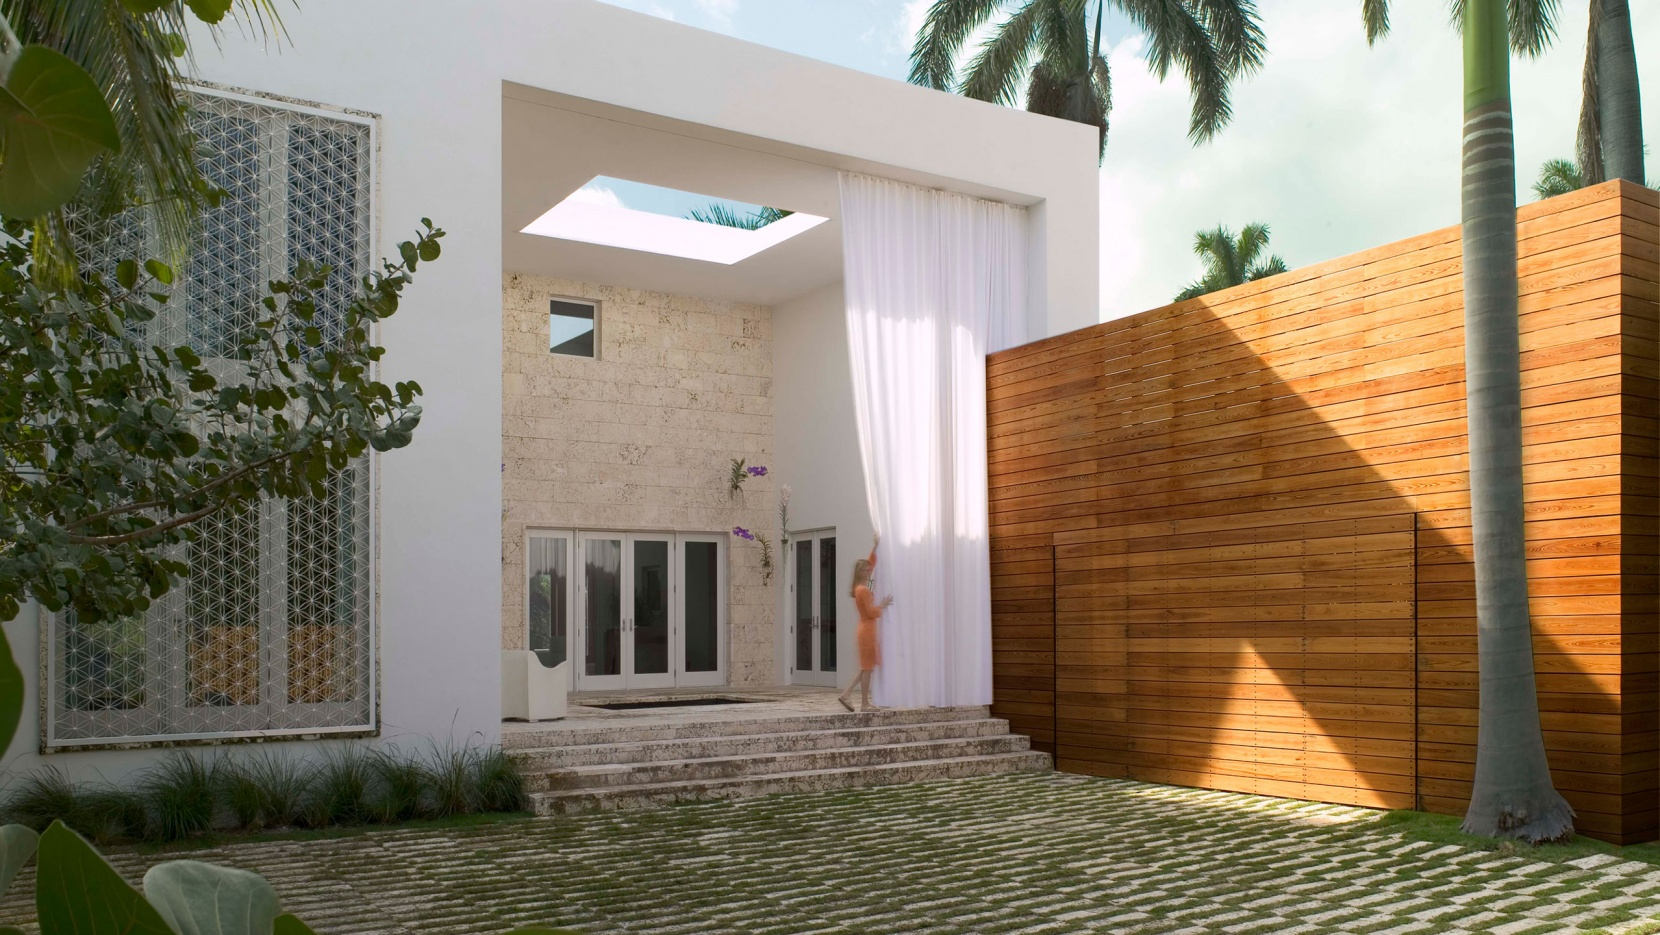 he heerful House of rchitect had Oppenheim in Miami Beach ... - ^